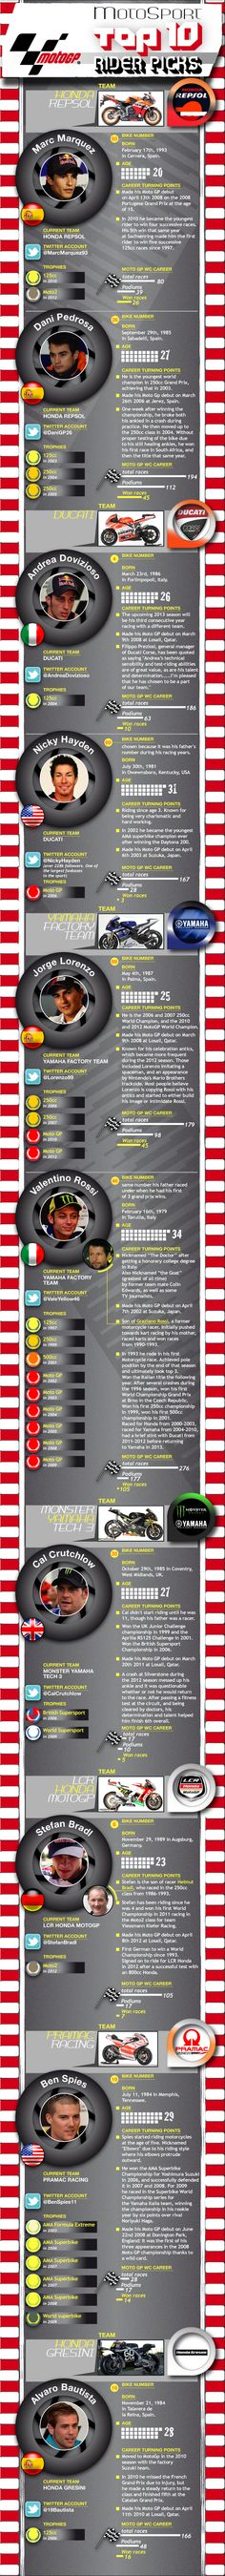 Infographic: 2013 MotoGP series rider profiles of 10 riders to keep an eye on over the current season.